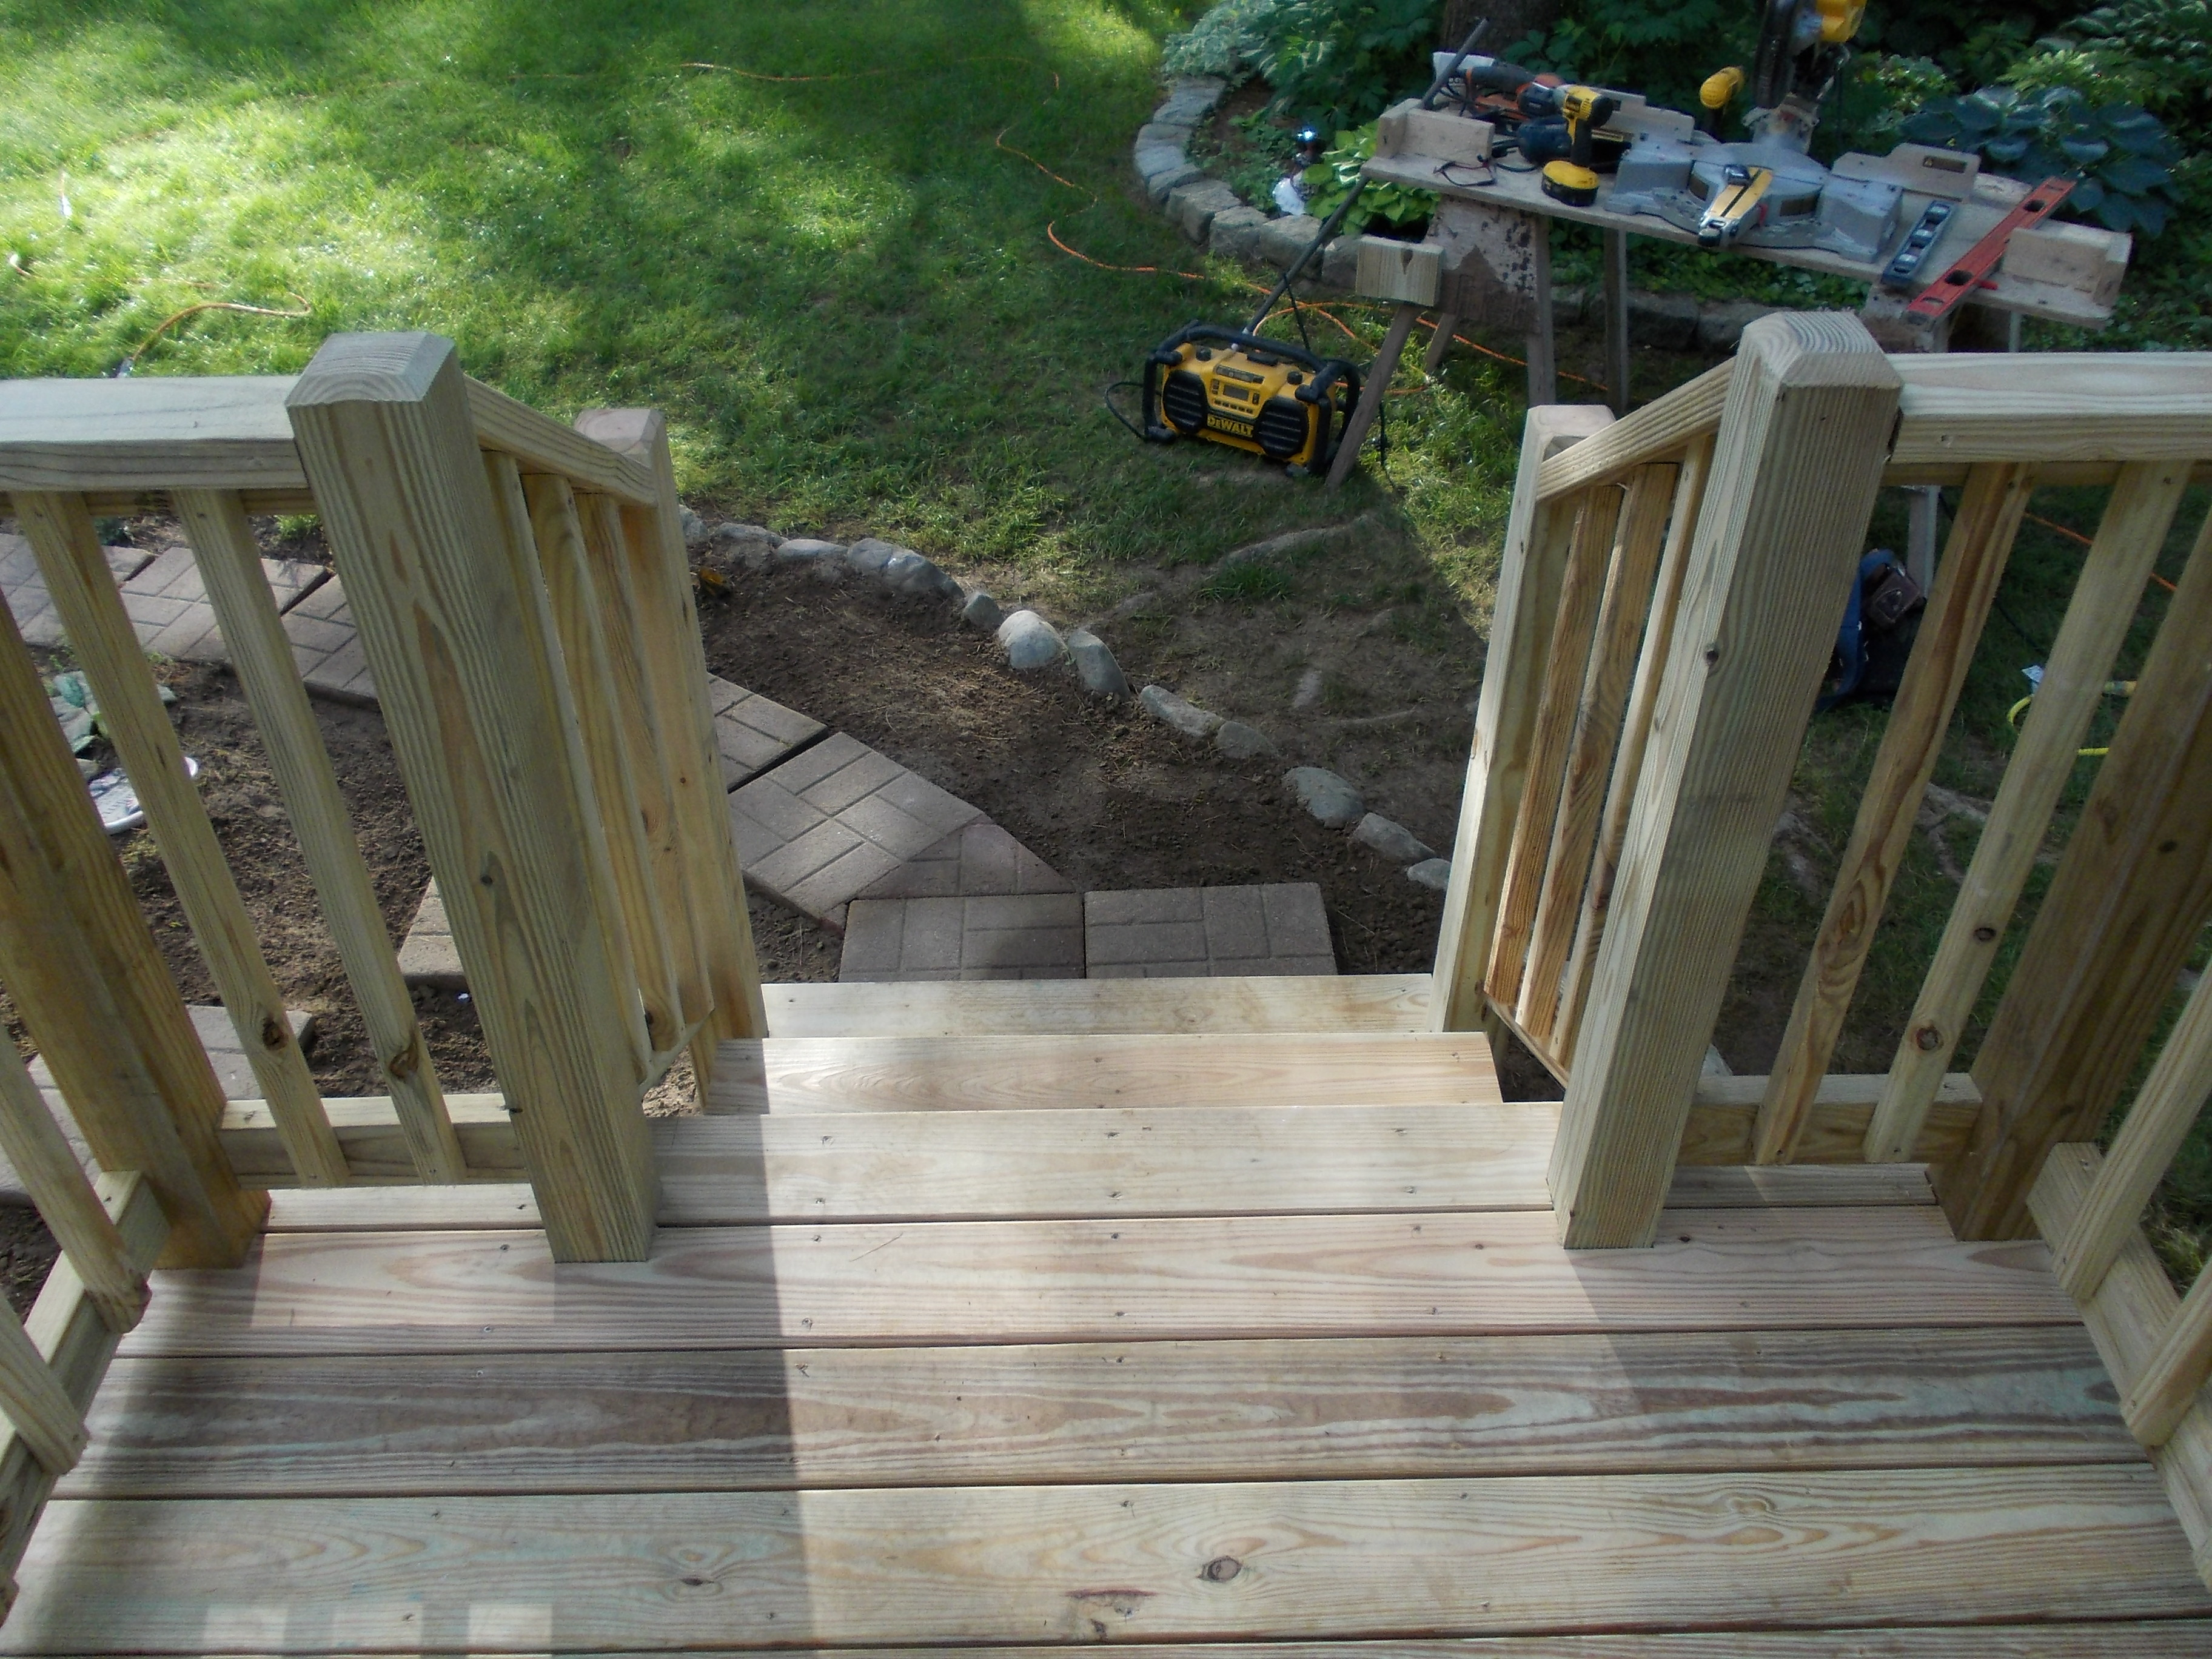 Outdoor Living | Patriot Construction of Upstate New York ... on Patriot Outdoor Living id=44741